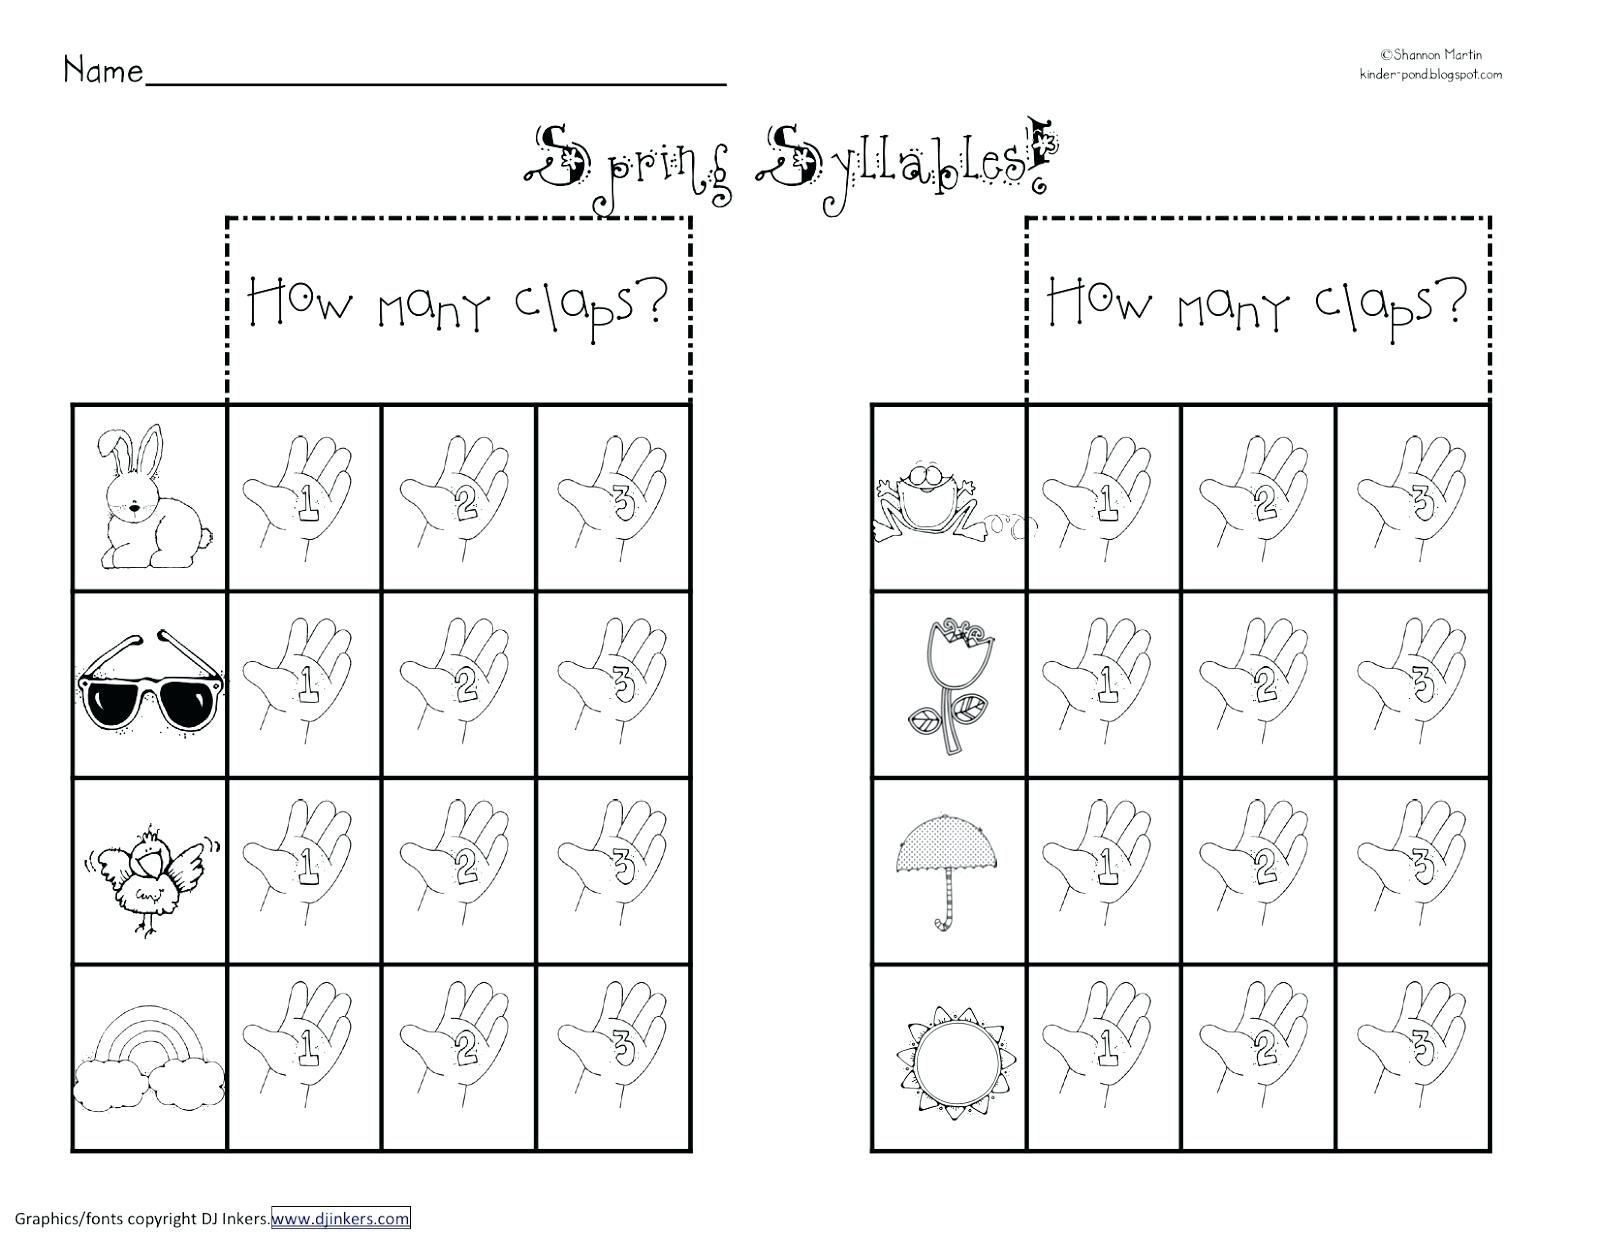 Syllable Worksheets 2Nd Grade Open And Closed Syllables Worksheets - Free Printable Open And Closed Syllable Worksheets